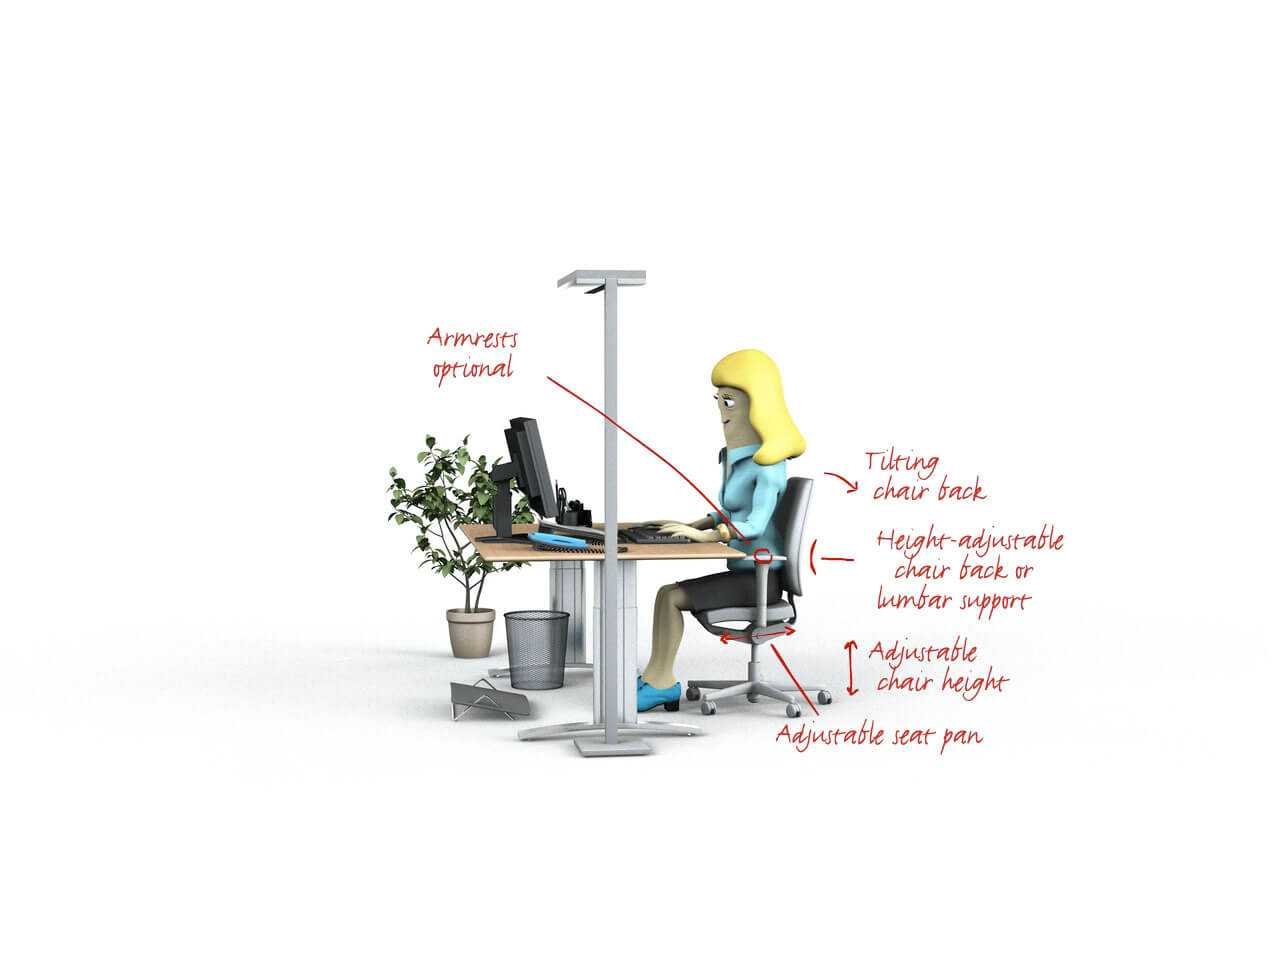 ergonomic chair guidelines track chairs for wounded veterans fcos box office requirements toward the